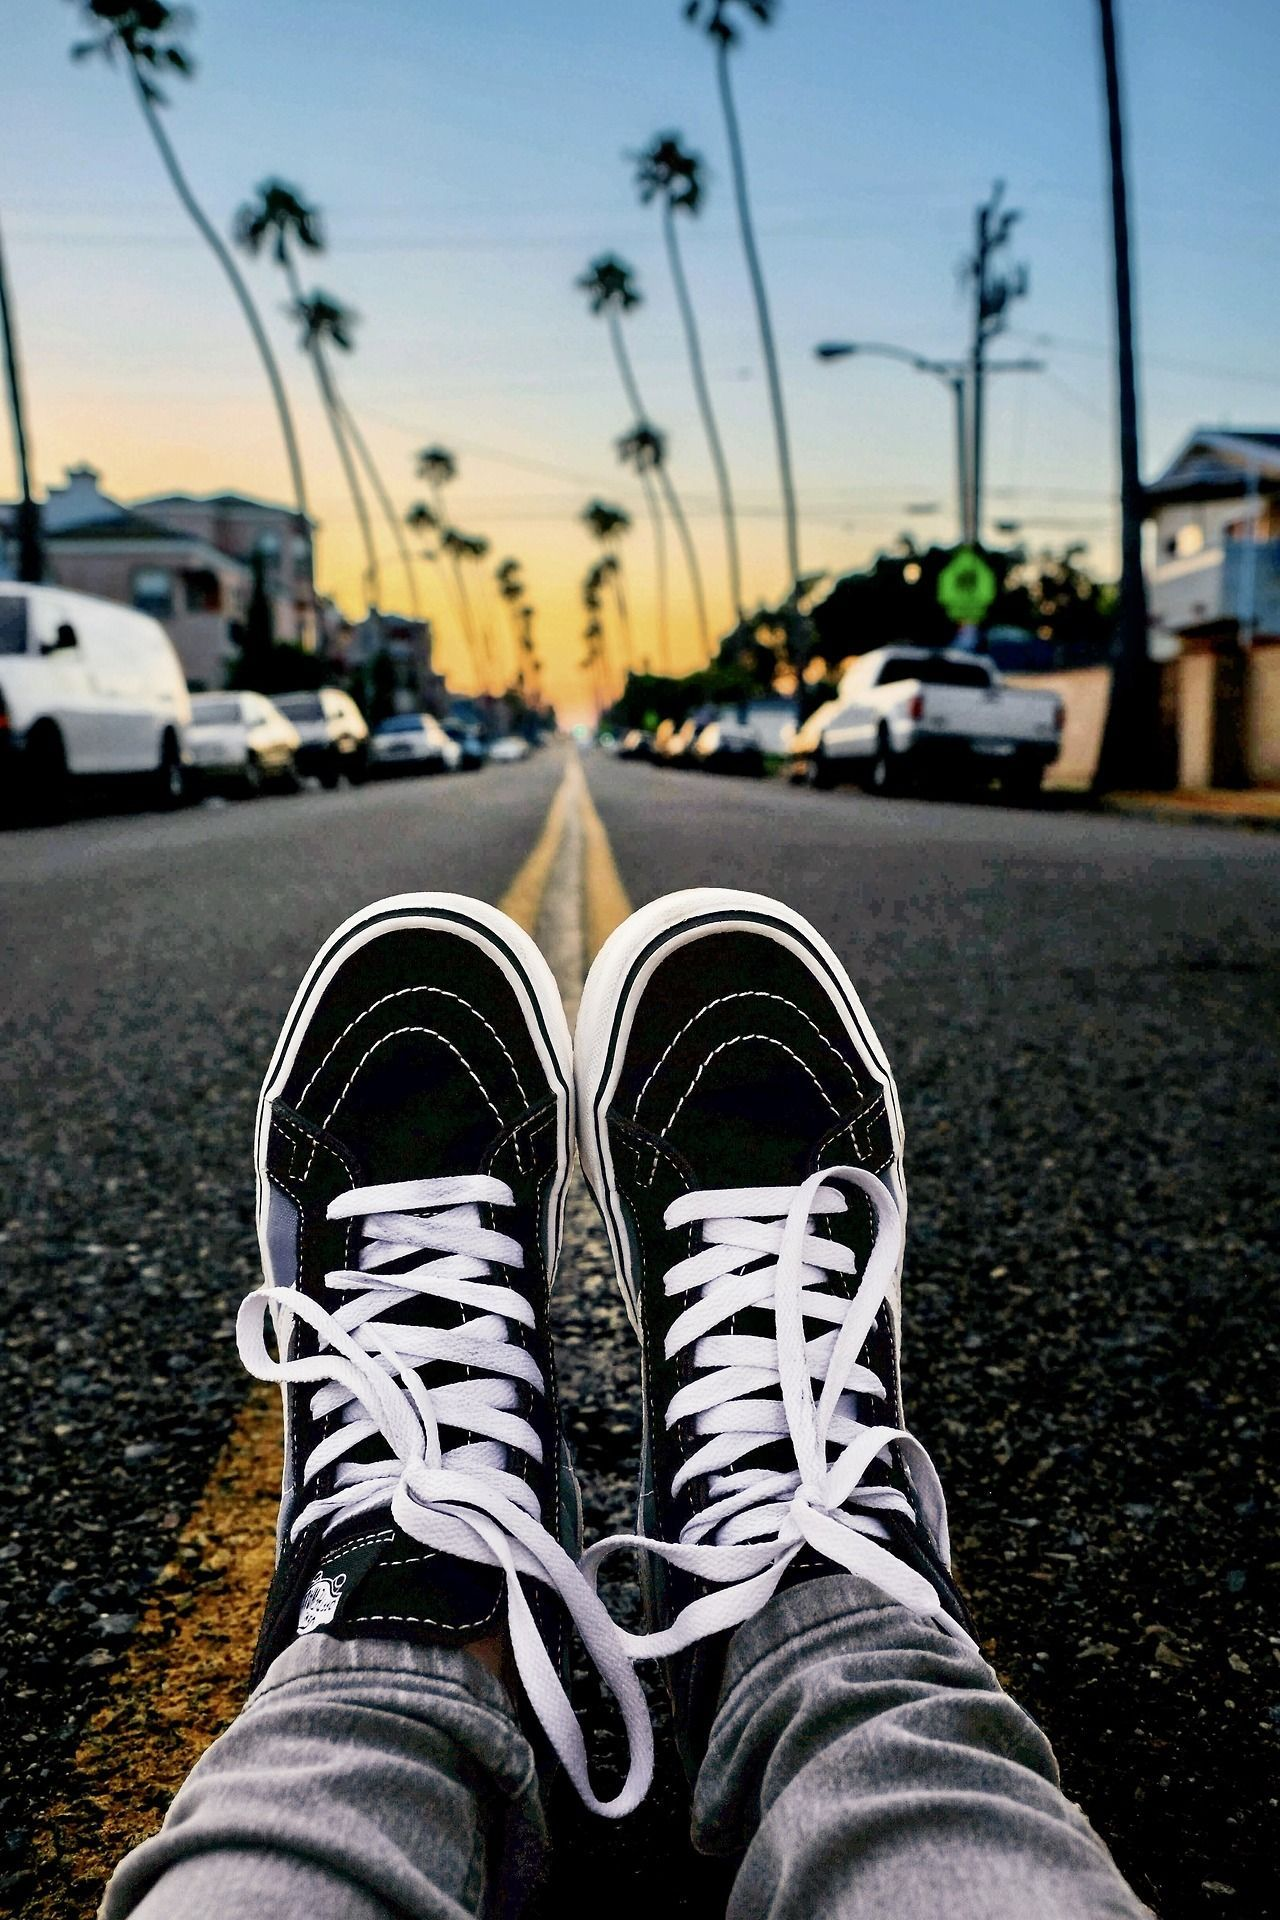 Group of Shoes Vans Wallpapers on WallpaperDog